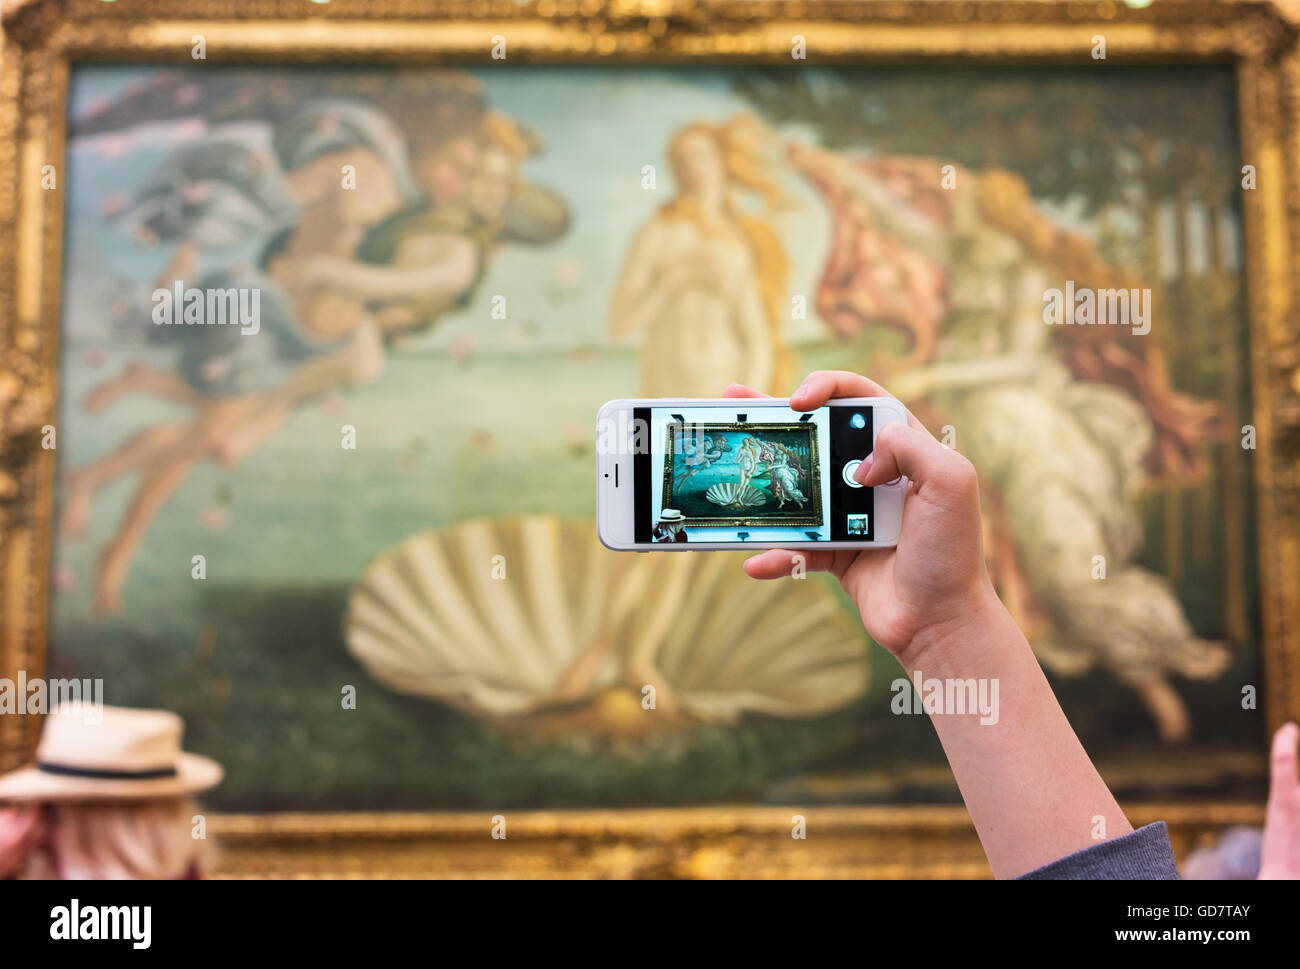 The Birth of Venus by Sandro Bottichelli in Florence's Uffizi Gallery seen through a smartphone screen. - Stock Image